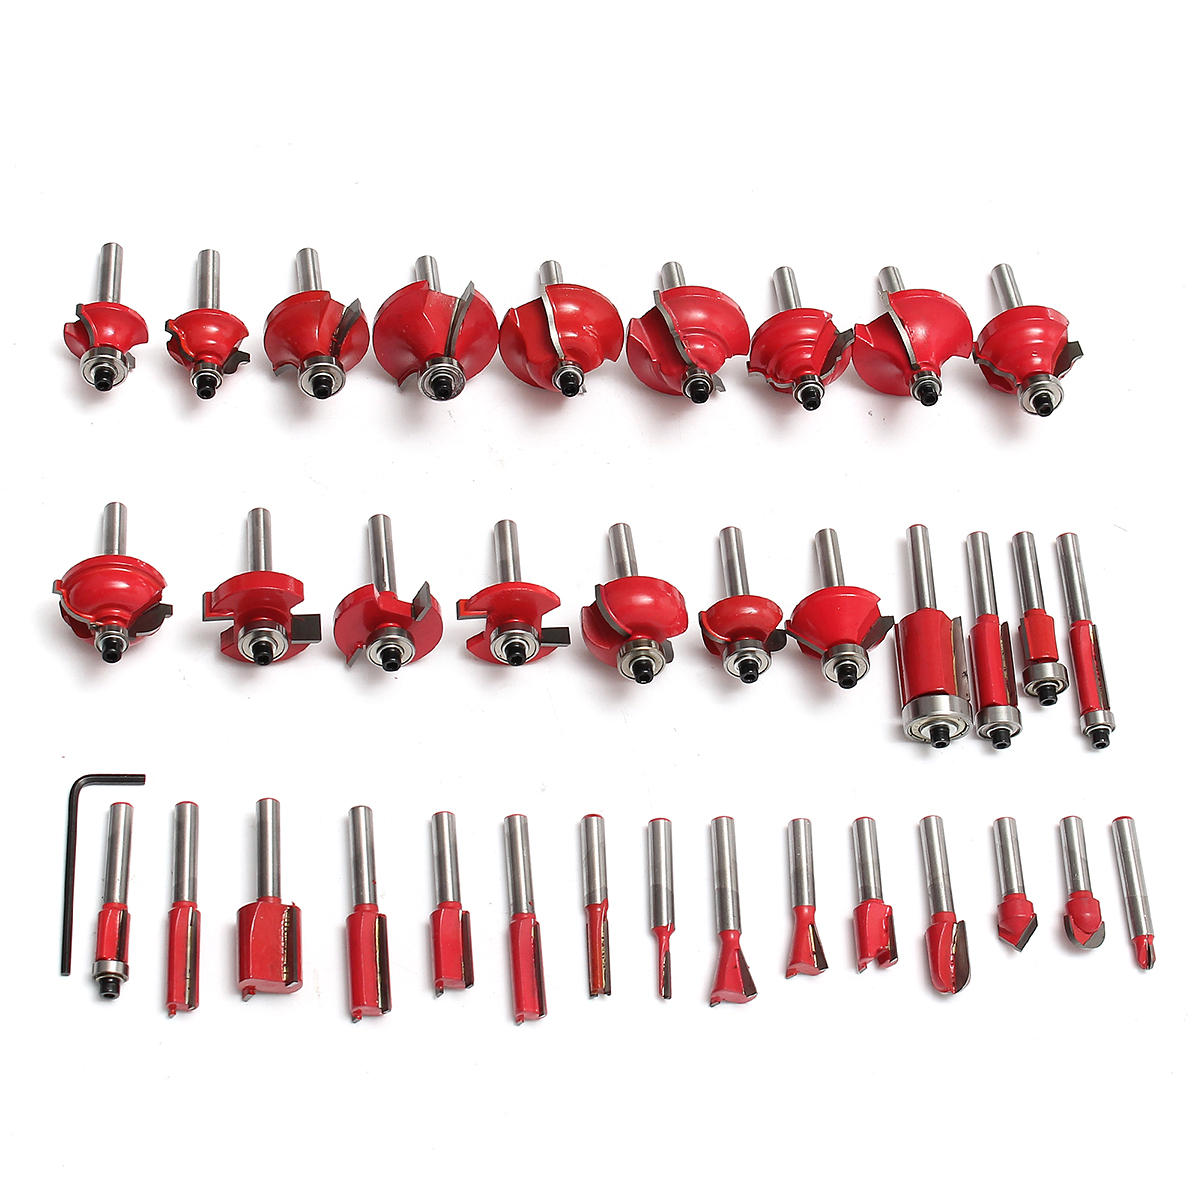 15pcs 8mm Shank Router Bit Tungsten Carbide Rotary Tool Wood Cutter - 5